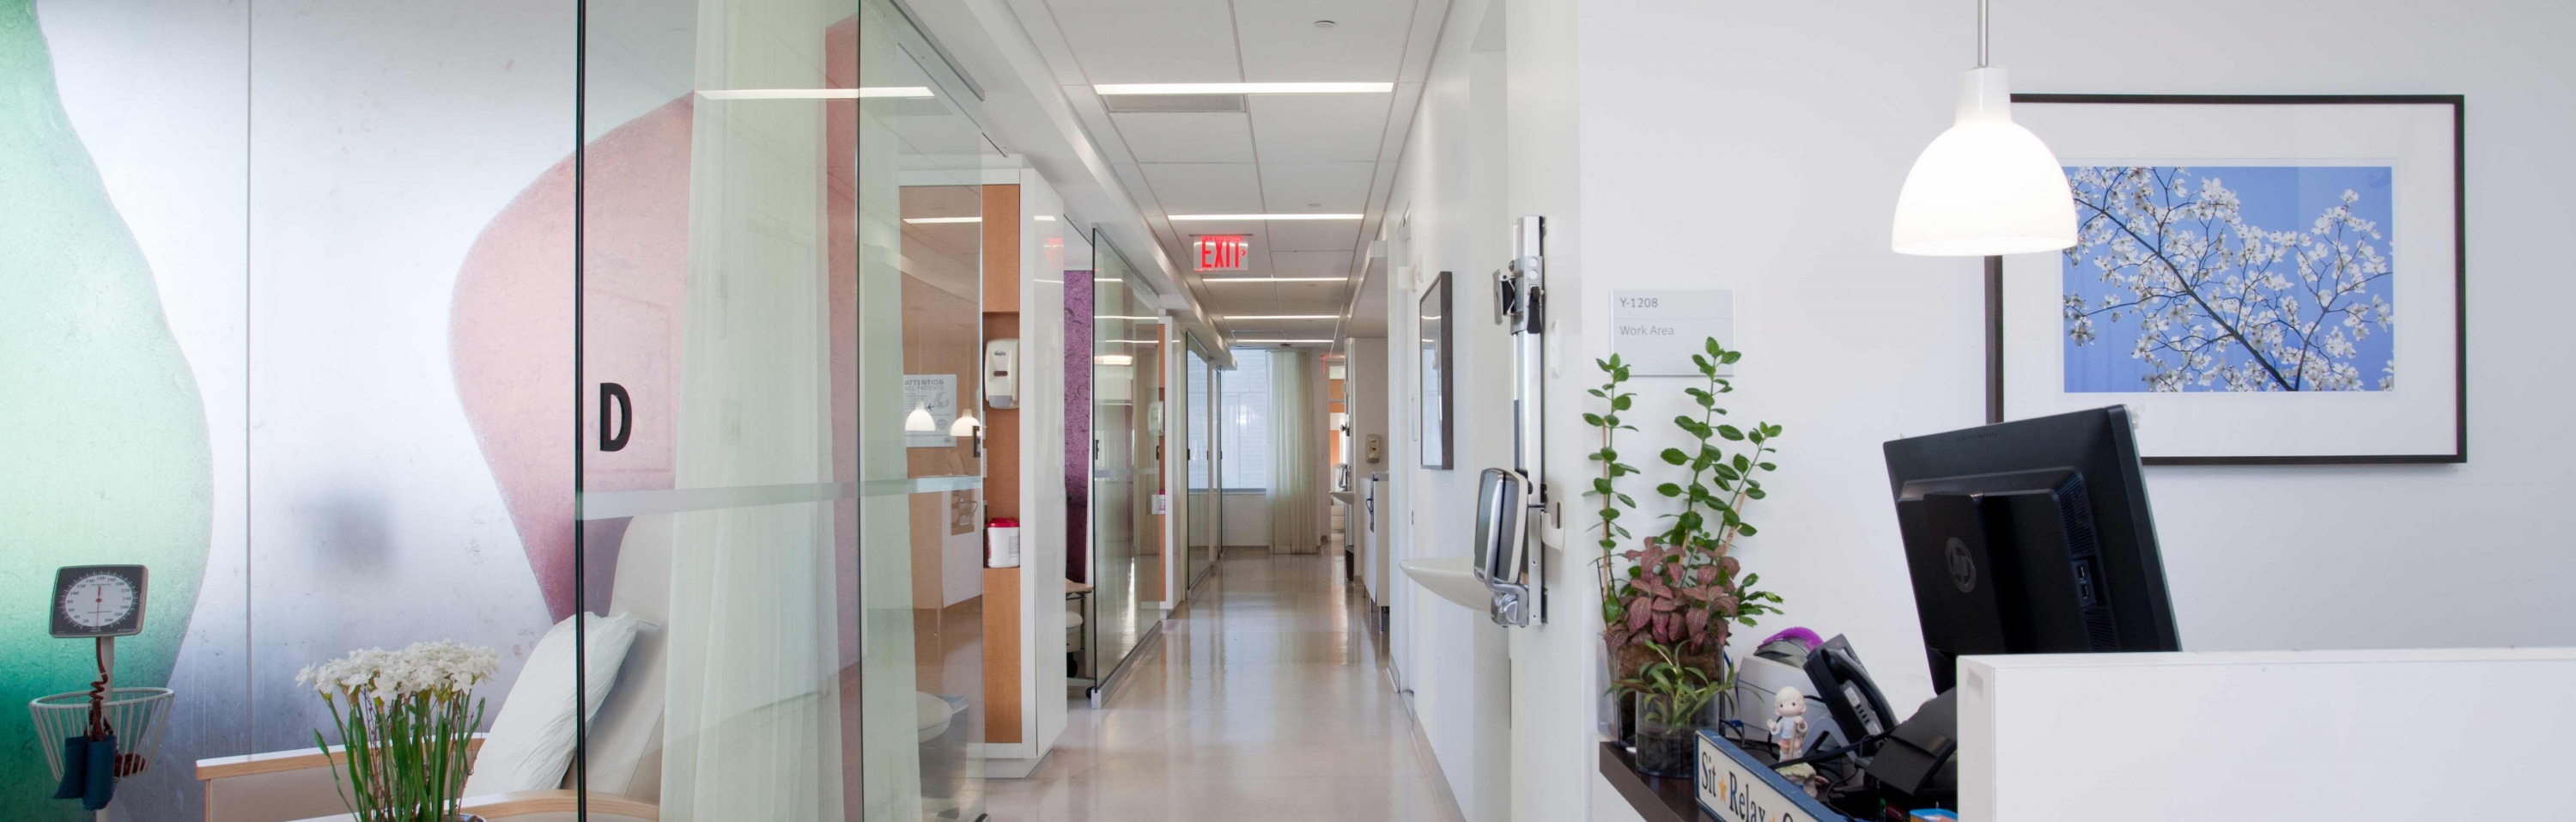 View of GI Oncology clinical space